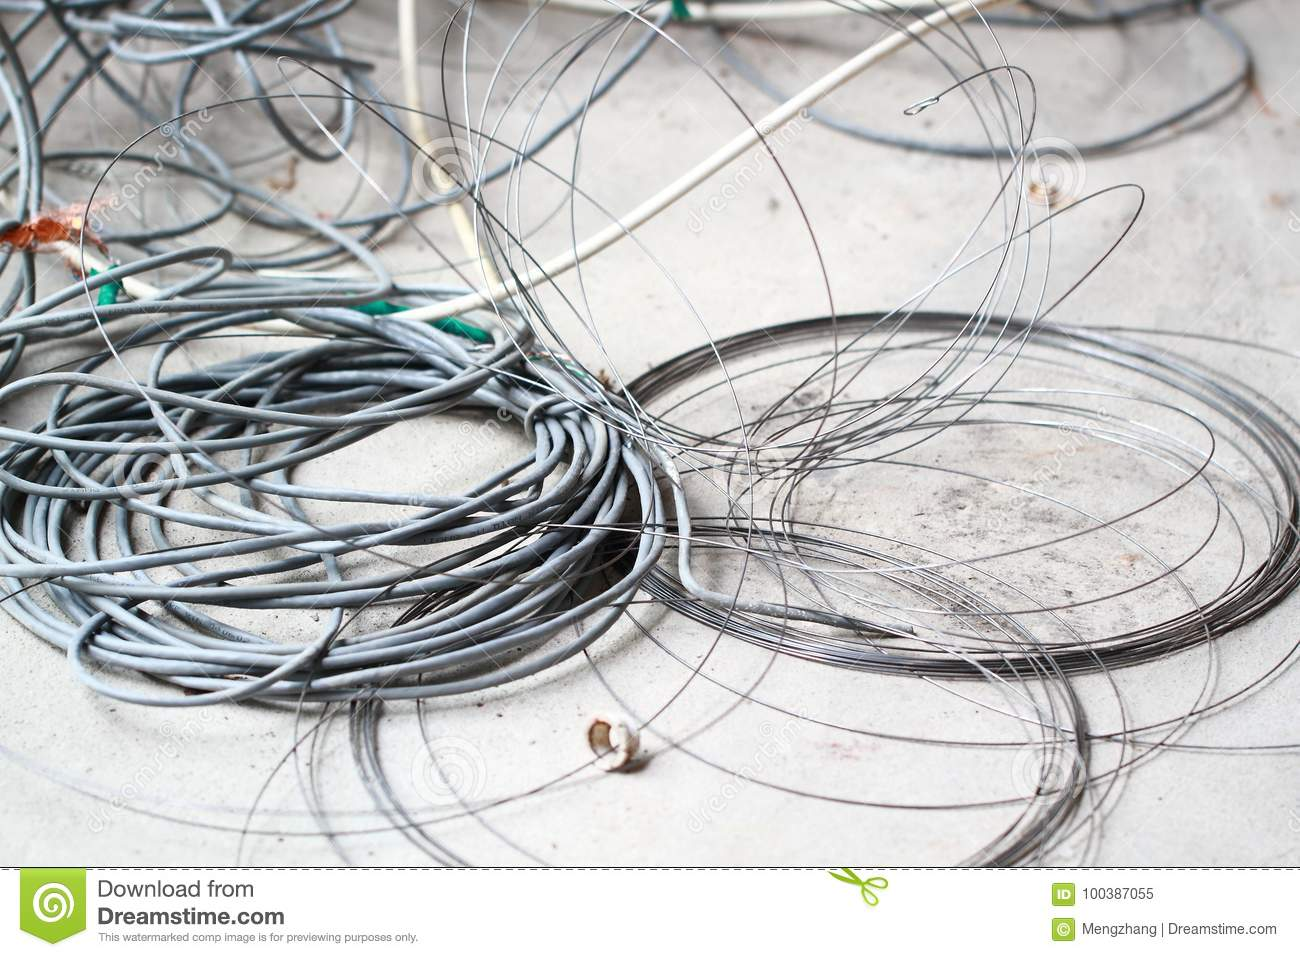 hight resolution of disused discarded ruined abandoned lan cable wires roll circle rope on the floor renovation decoration refurbish